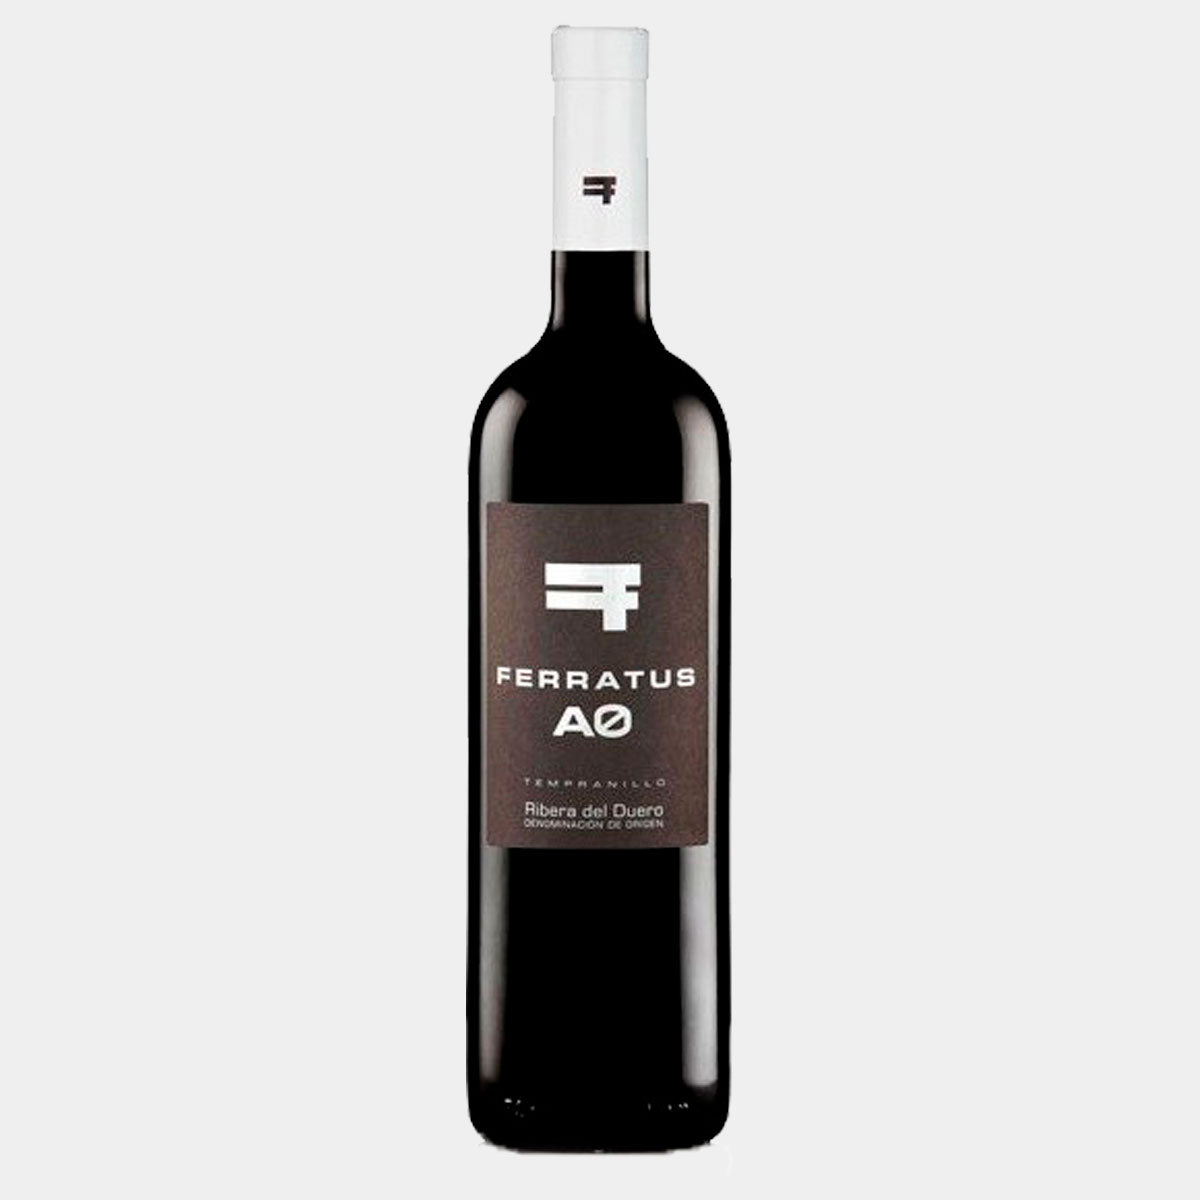 Ferratus A0 - Wines and Copas Barcelona